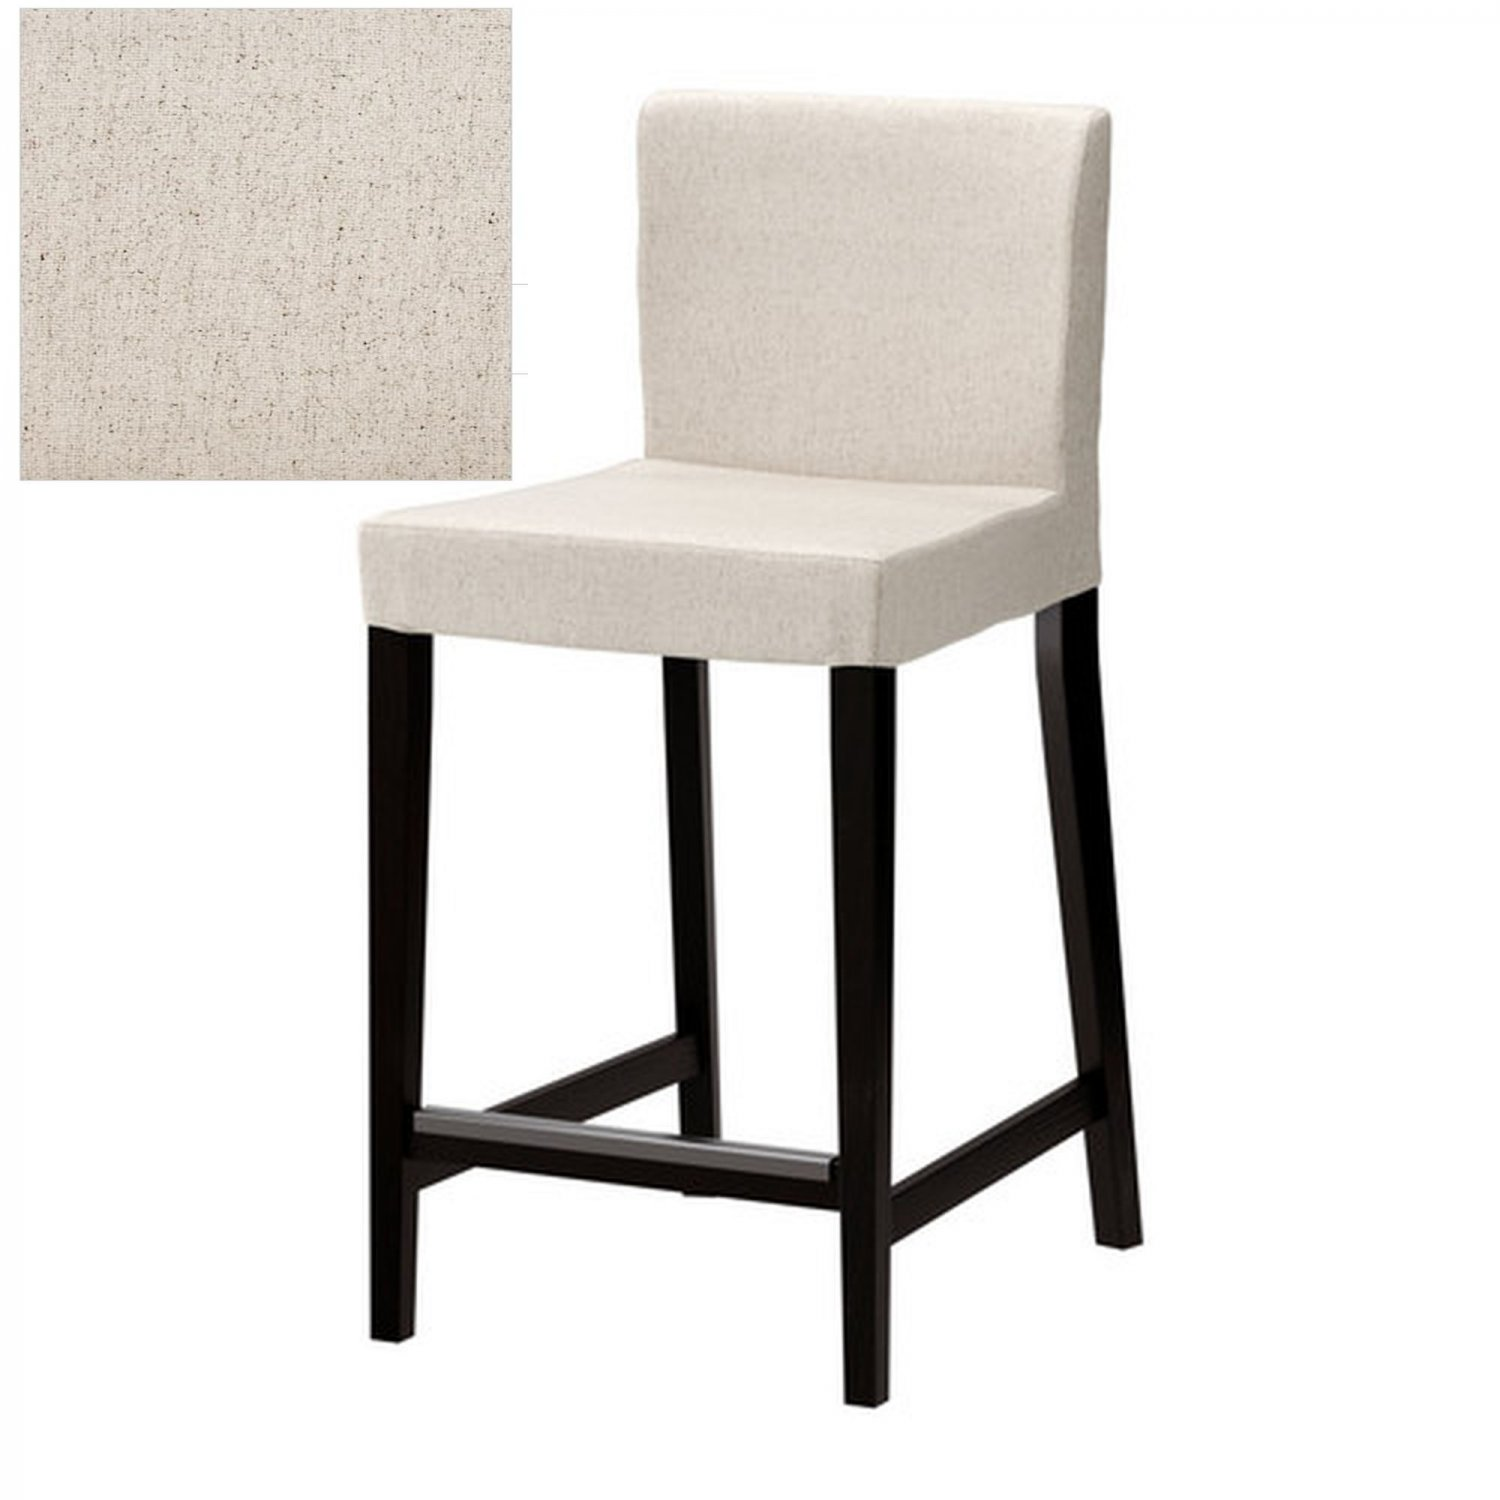 ikea henriksdal linneryd natural bar stool slipcover barstool cover 19 48cm beige. Black Bedroom Furniture Sets. Home Design Ideas